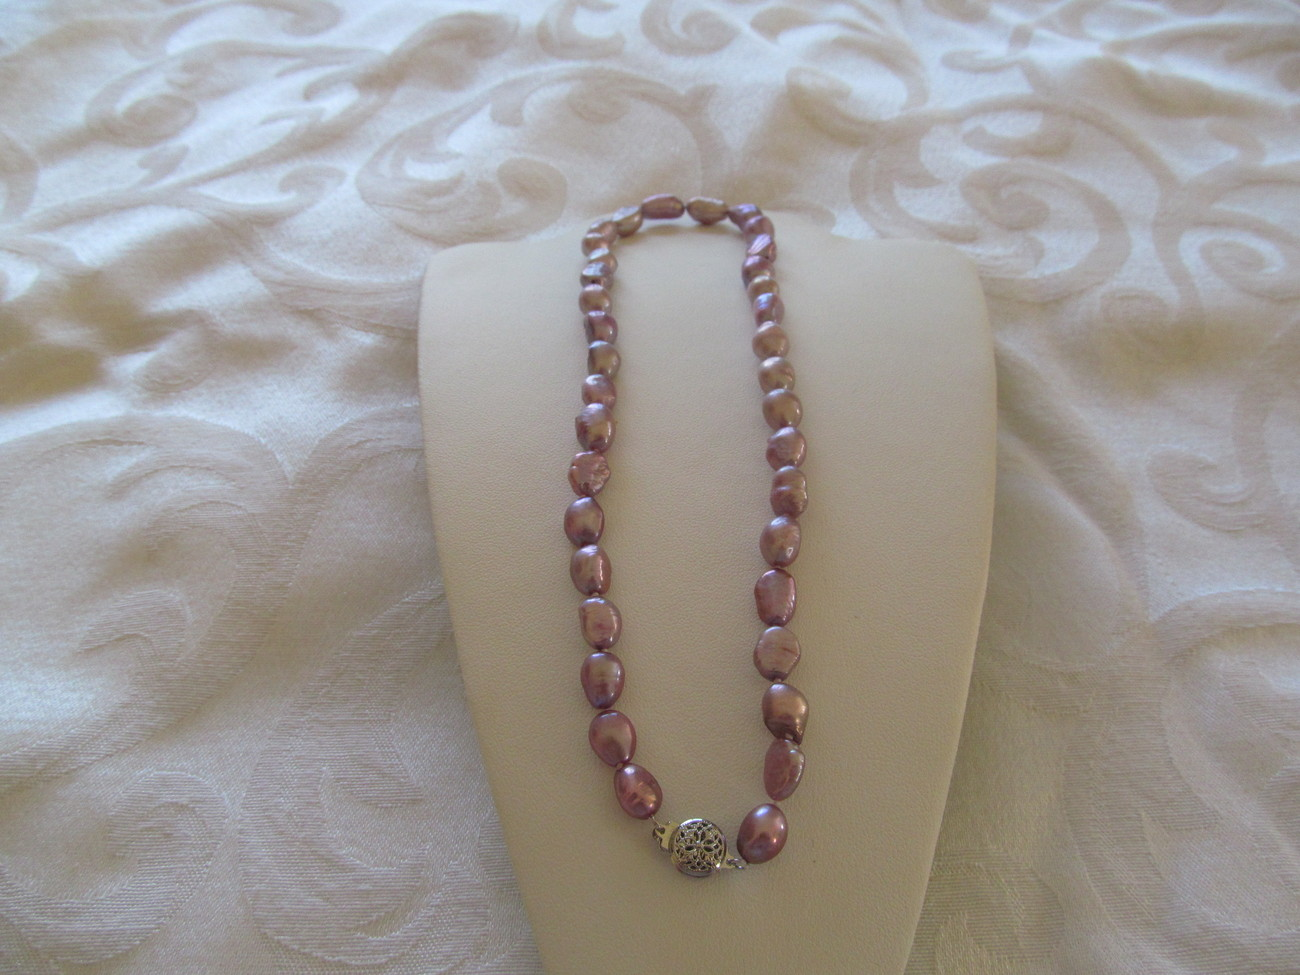 CULTURED RING BAROQUE PEARL LAVENDER NECKACES 17 inch